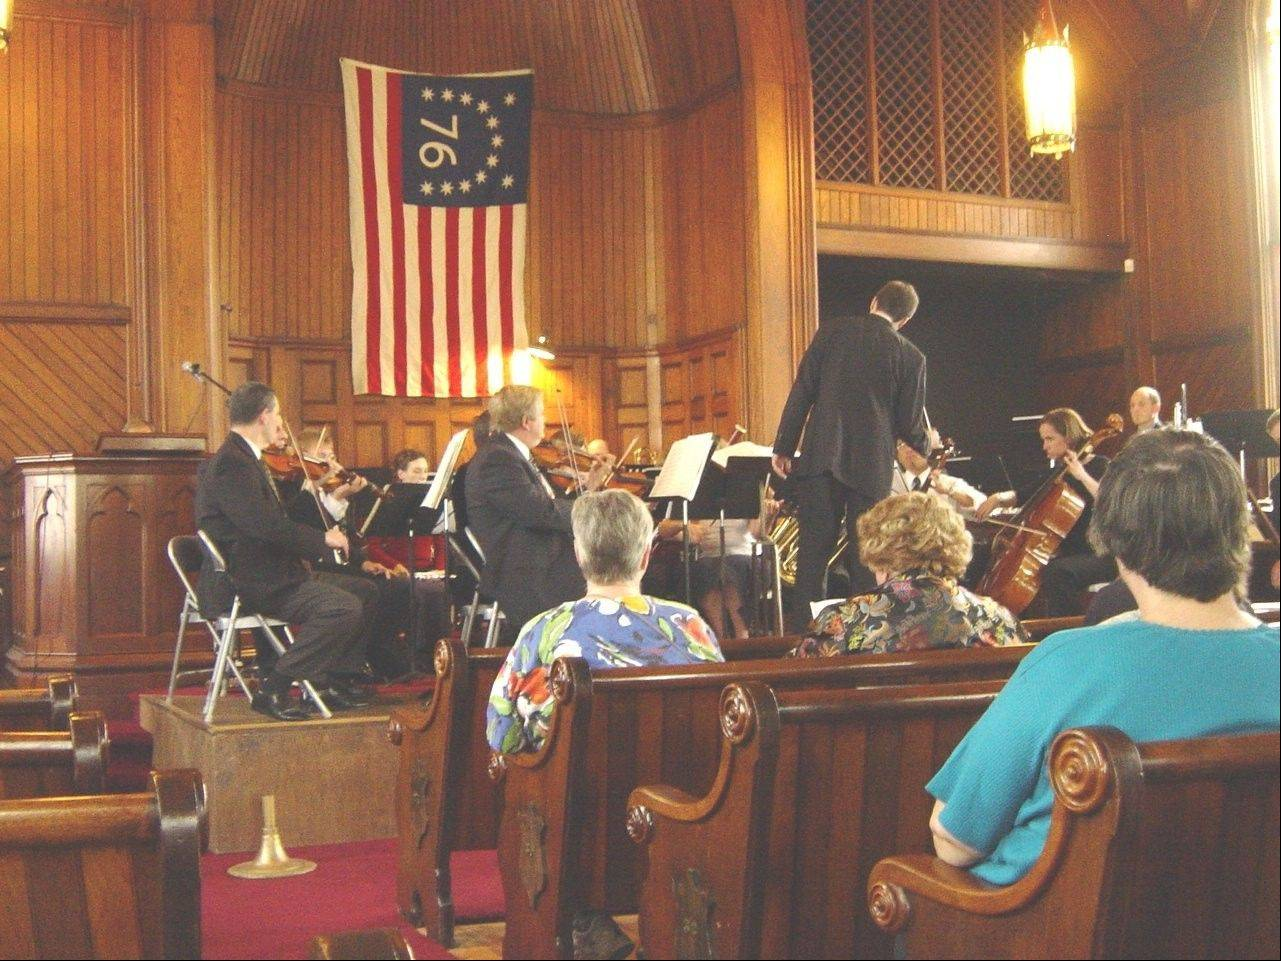 A 22-piece orchestra will perform the 13th annual American Heritage Concert at 3 p.m. Saturday, March 23, as part of the Maple Street Chapel Preservation Society's variety series. Here, the orchestra performs in the chapel at the corner of Main and Maple streets in Lombard.